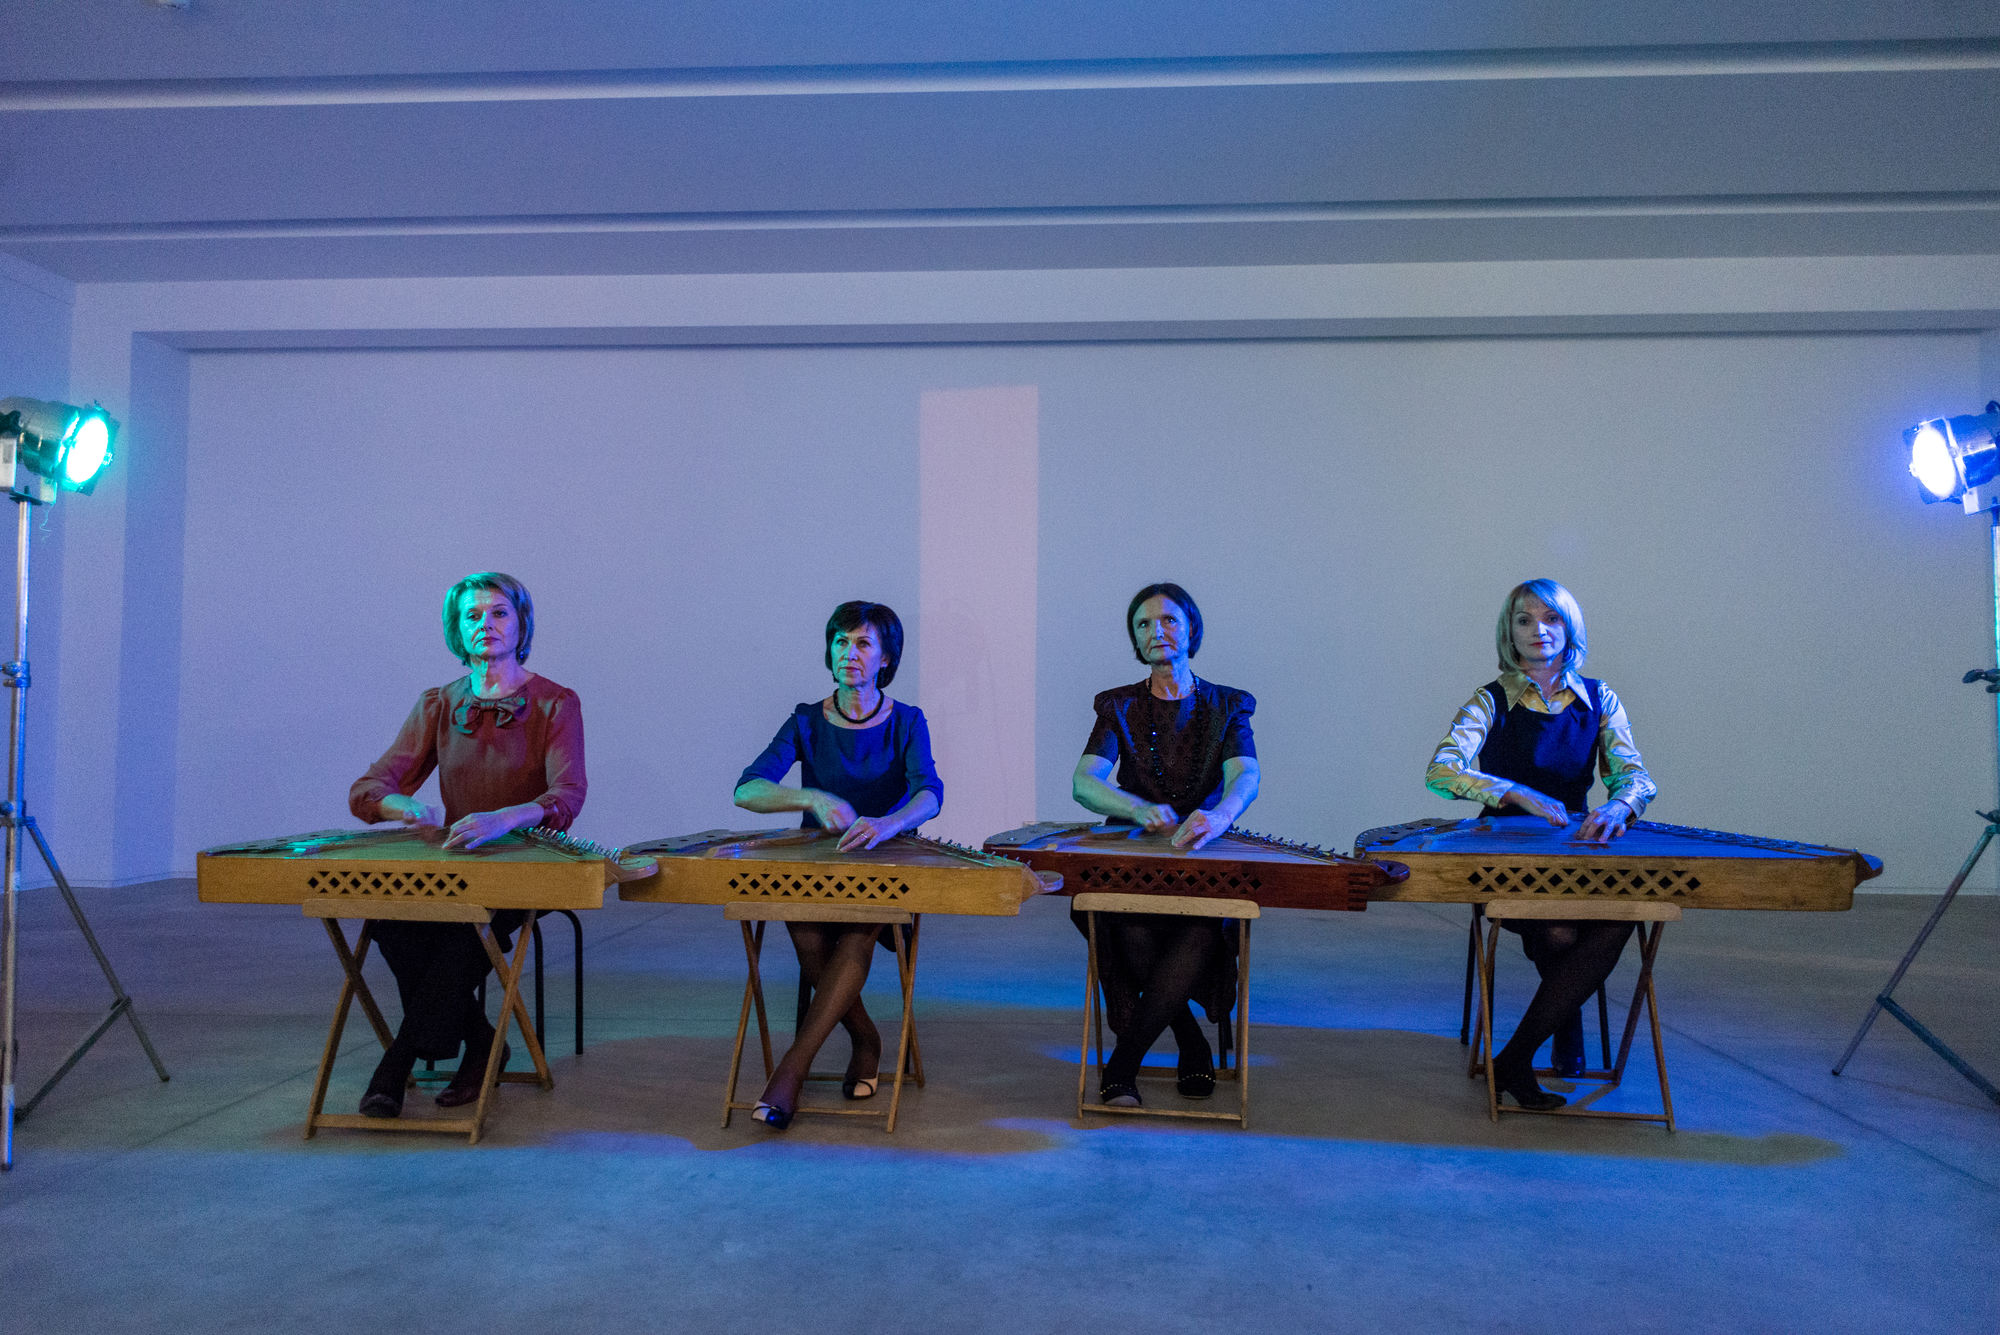 'Ladies', Lina Lapelyte, 2015, performance 3